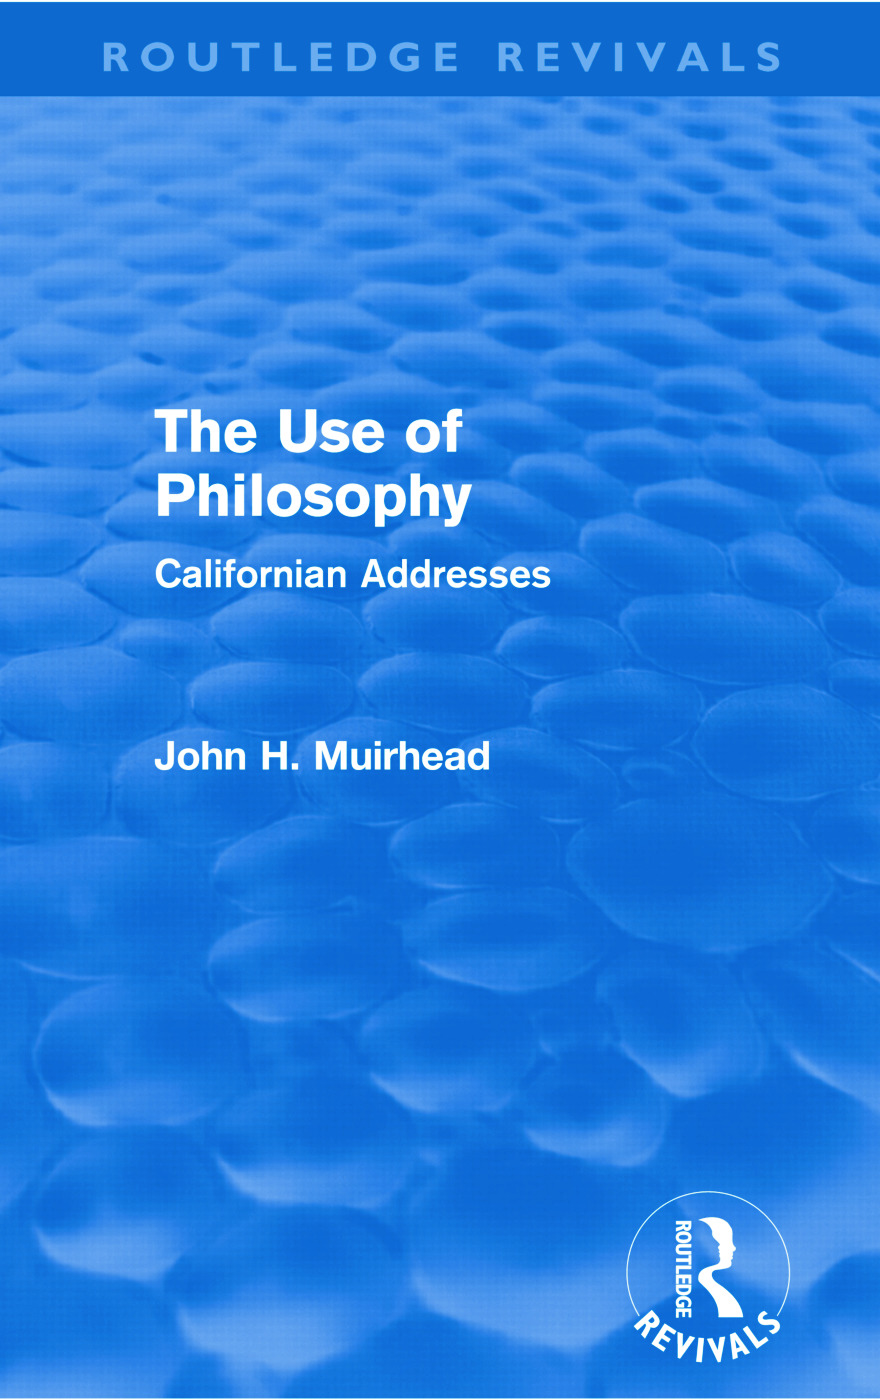 The Use of Philosophy (Routledge Revivals): Californian Addresses (Paperback) book cover